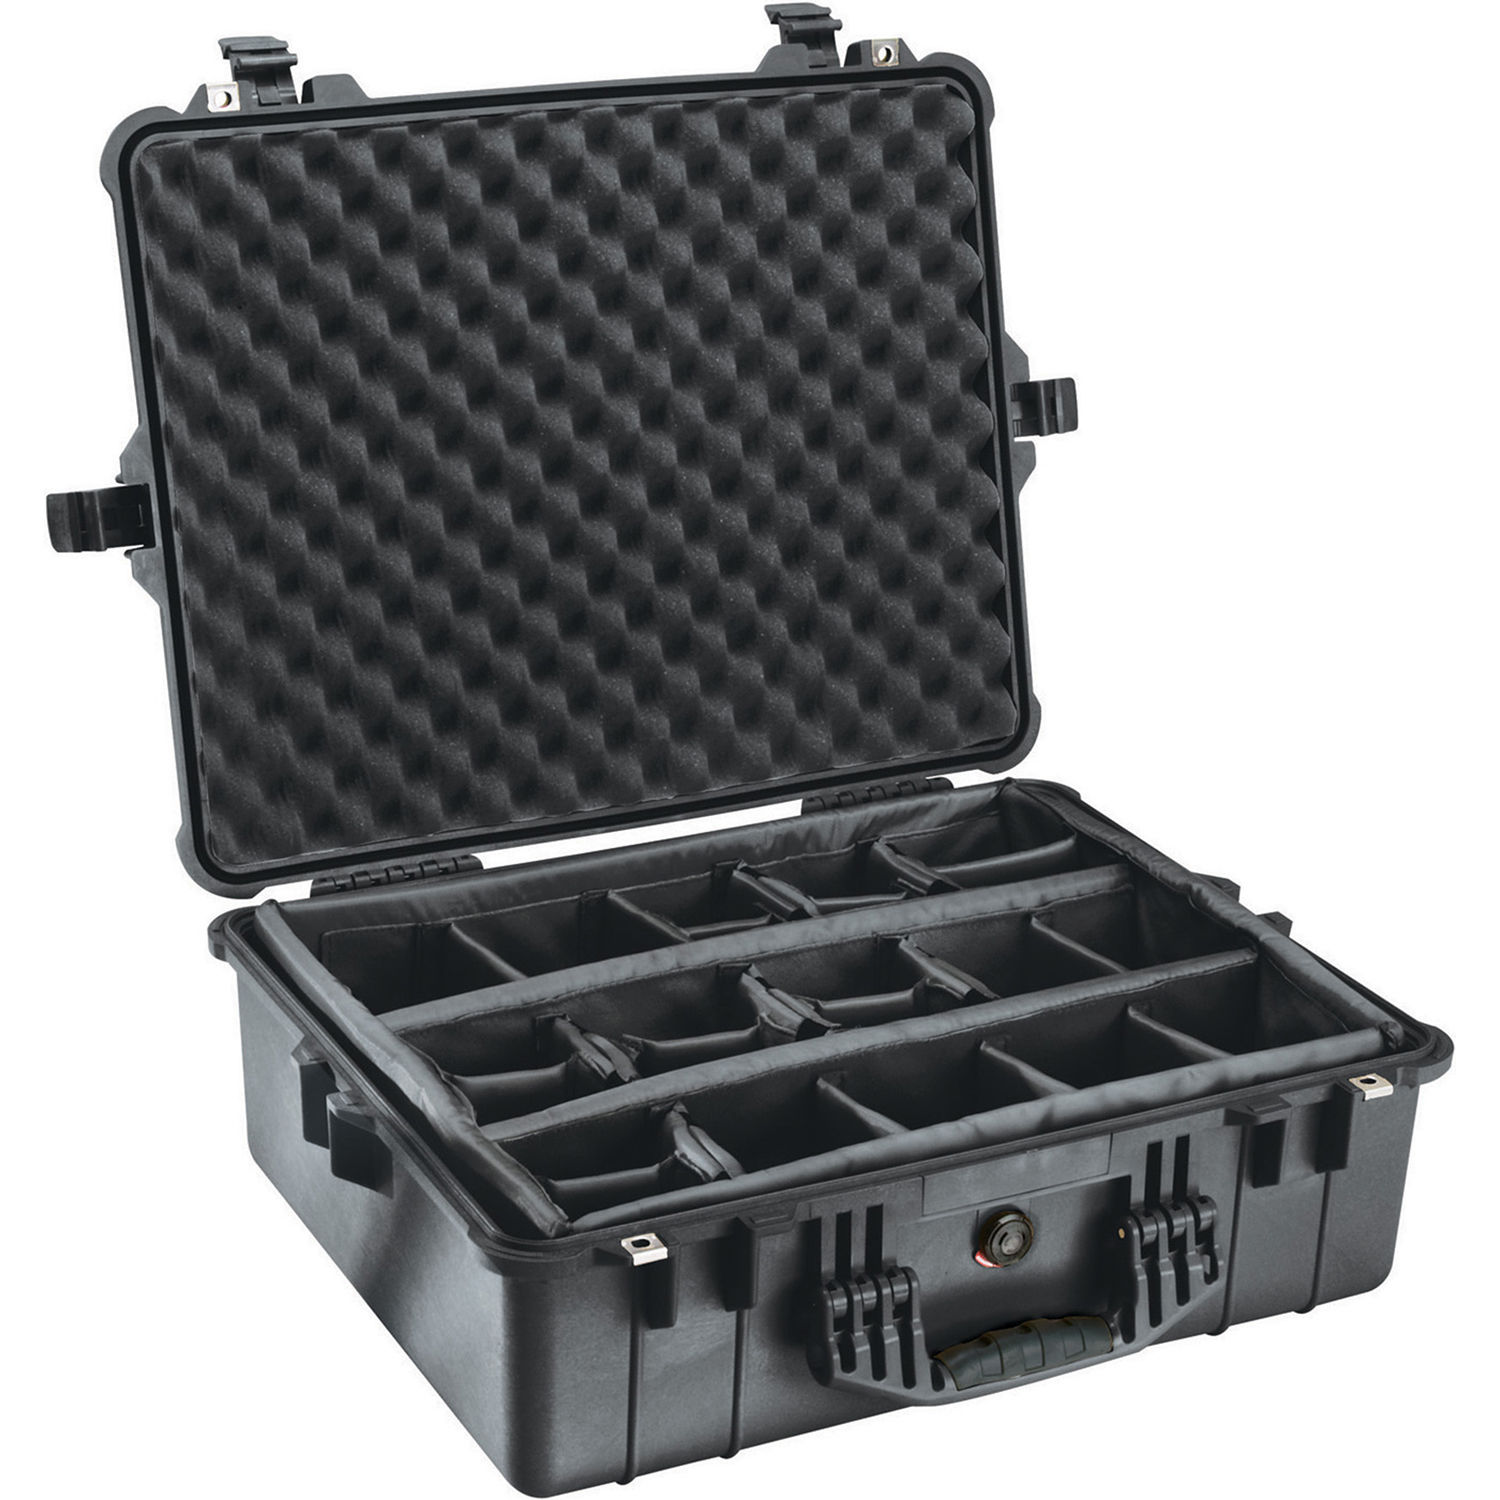 Pelican 1604 Waterproof 1600 Case with Dividers (Black)